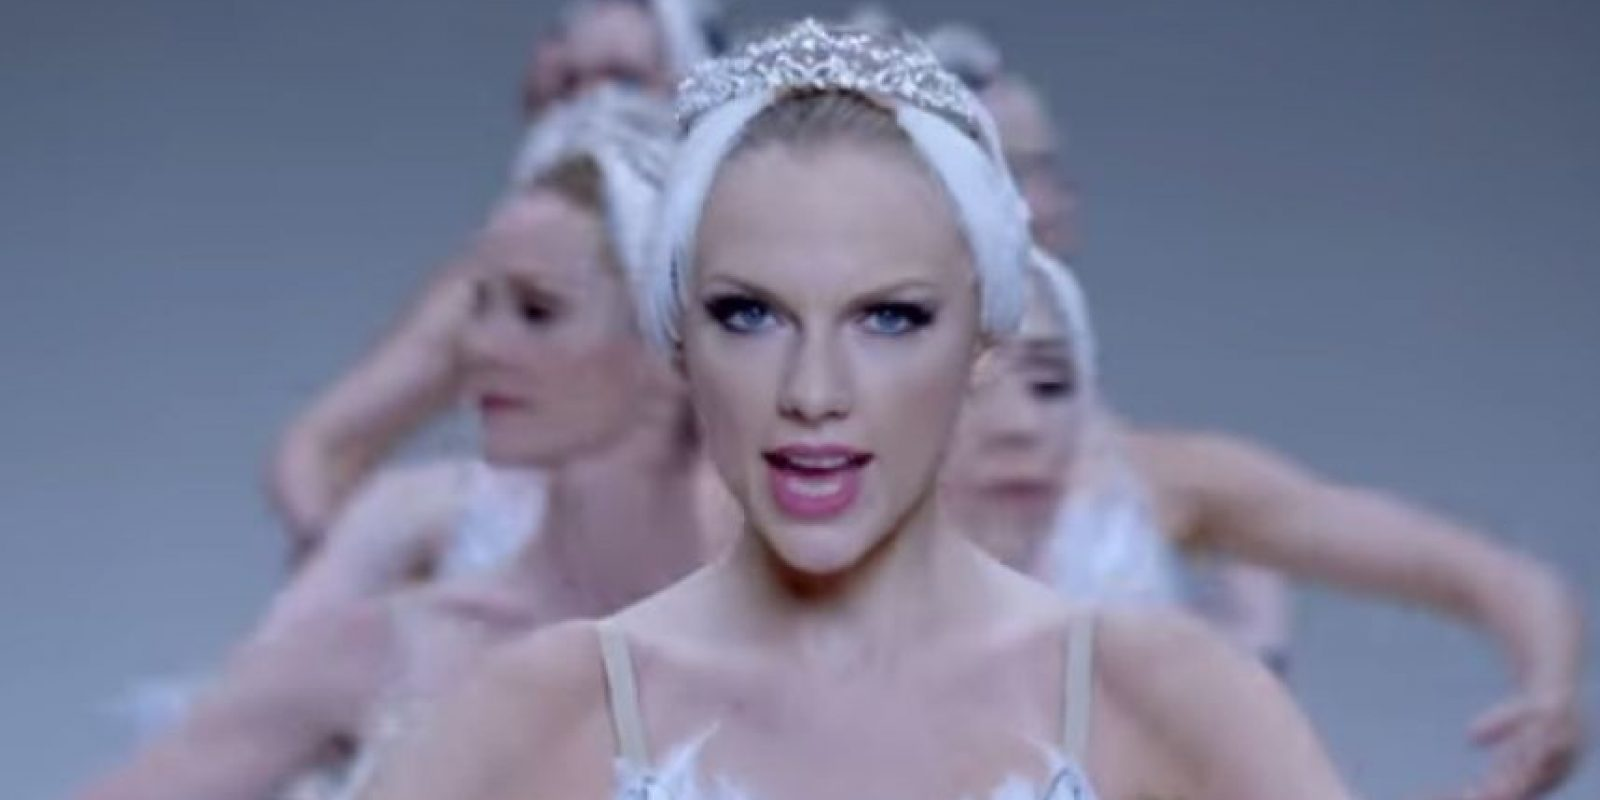 """Haters Gone Hate"", canción de Graham dice: Foto: YouTube/taylorswiftVEVO"